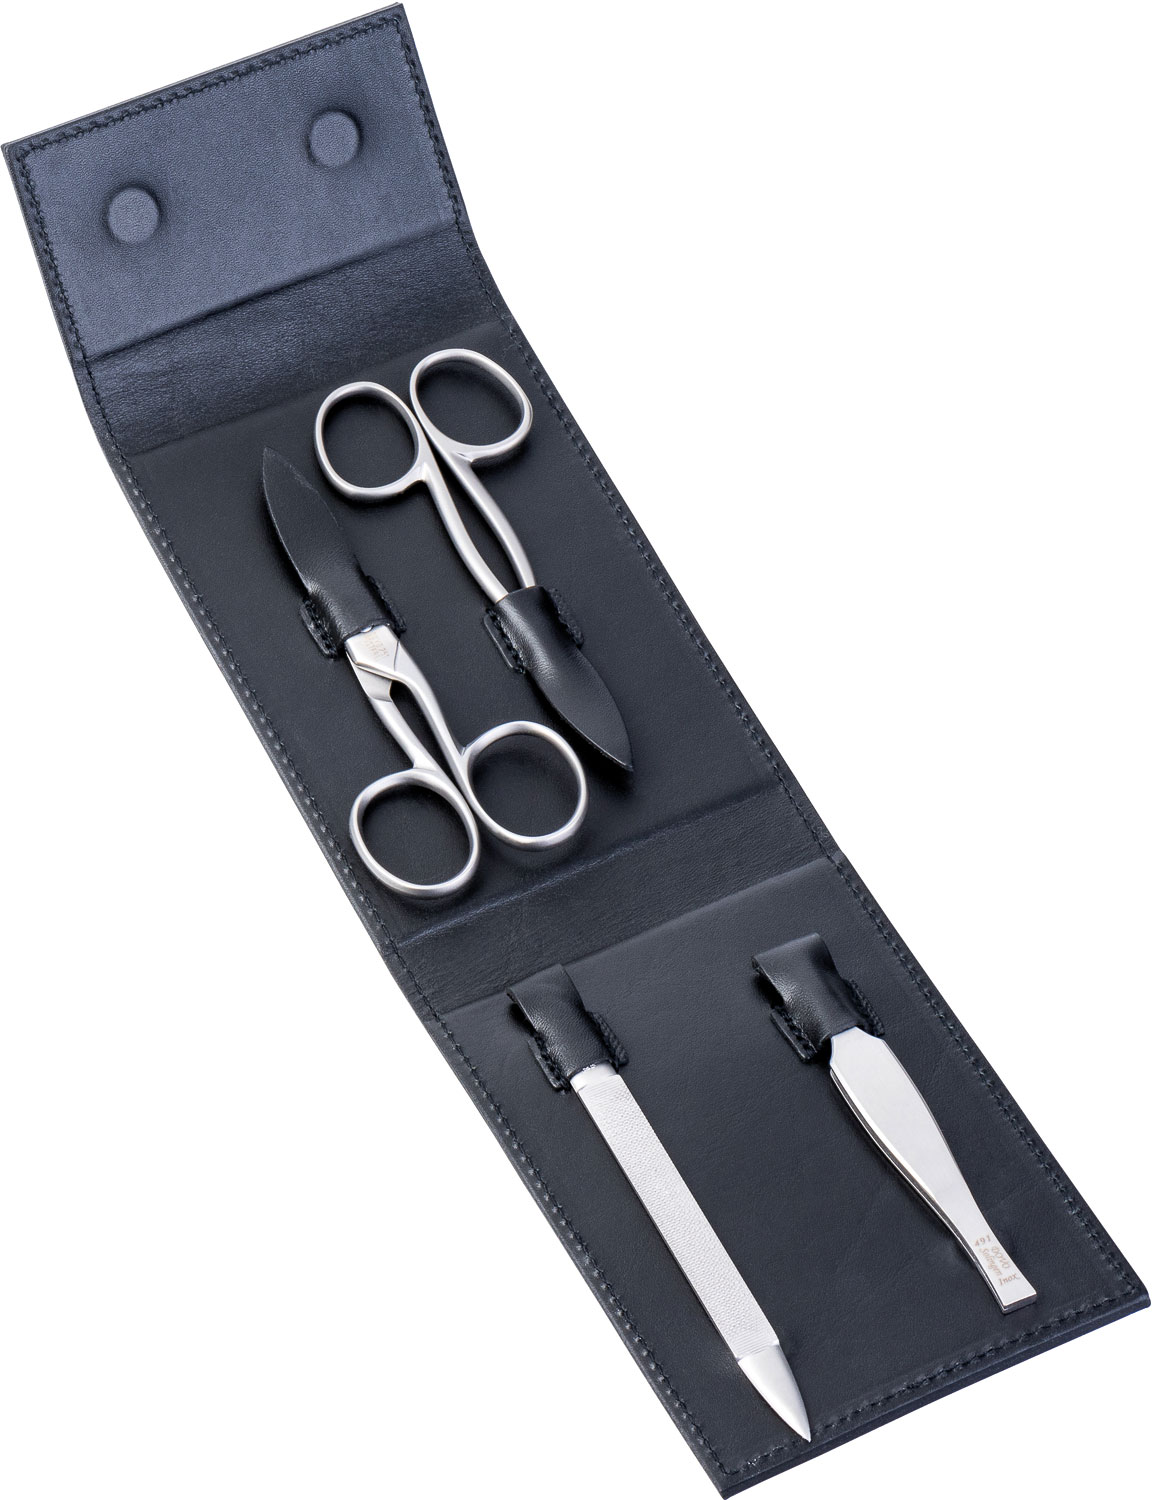 DOVO 4 Piece Manicure Set in Magnetic Black Leather Case